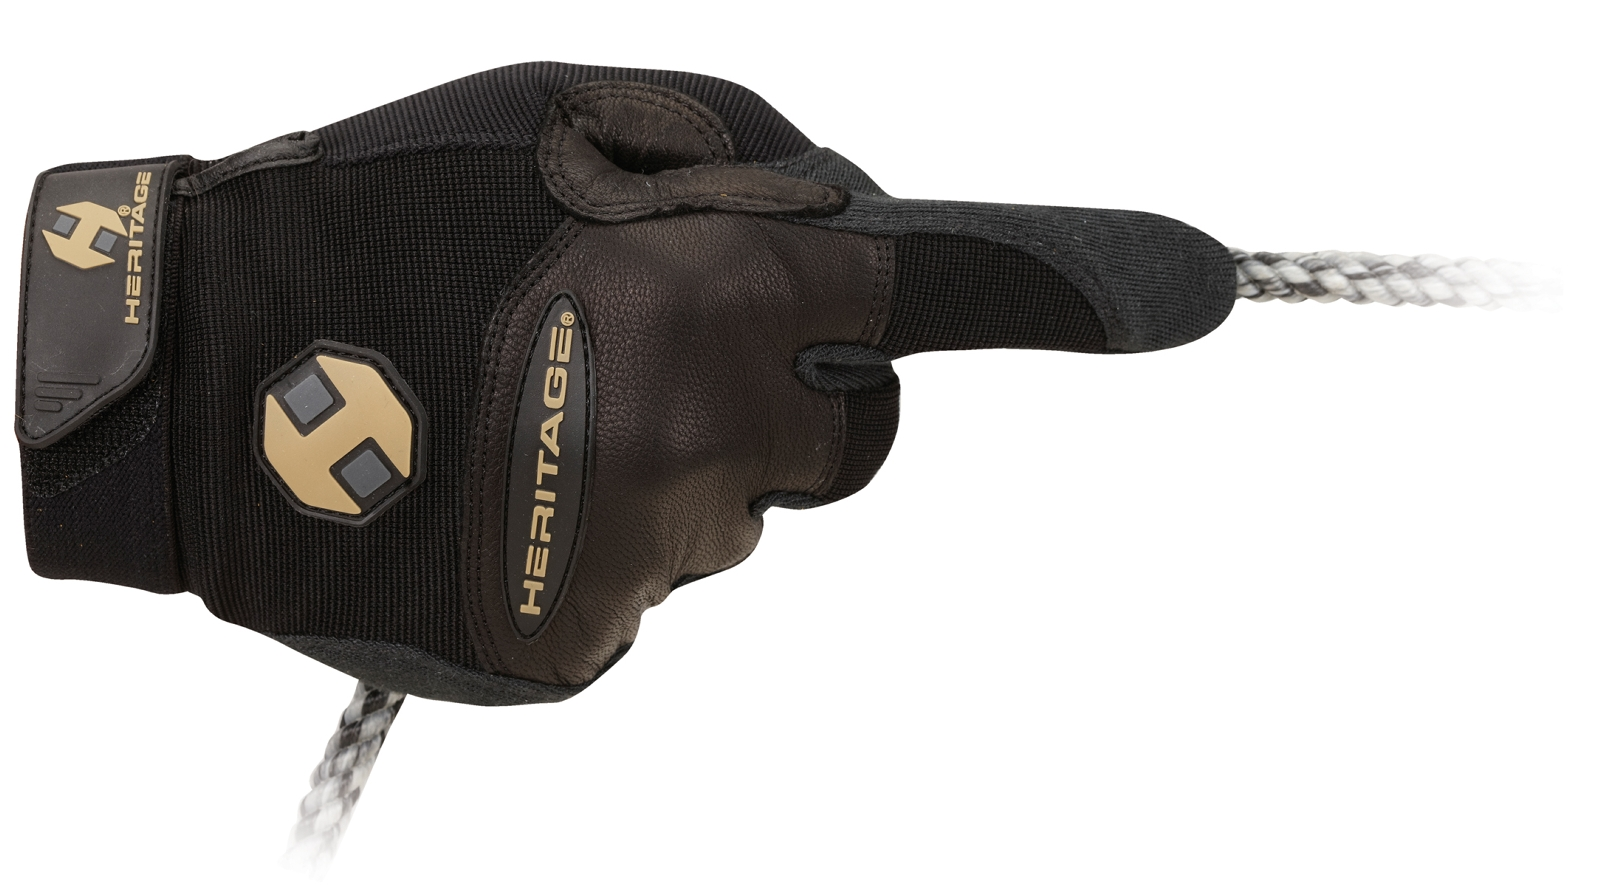 Heritage Child's Champion Roping Glove - Right Hand Only